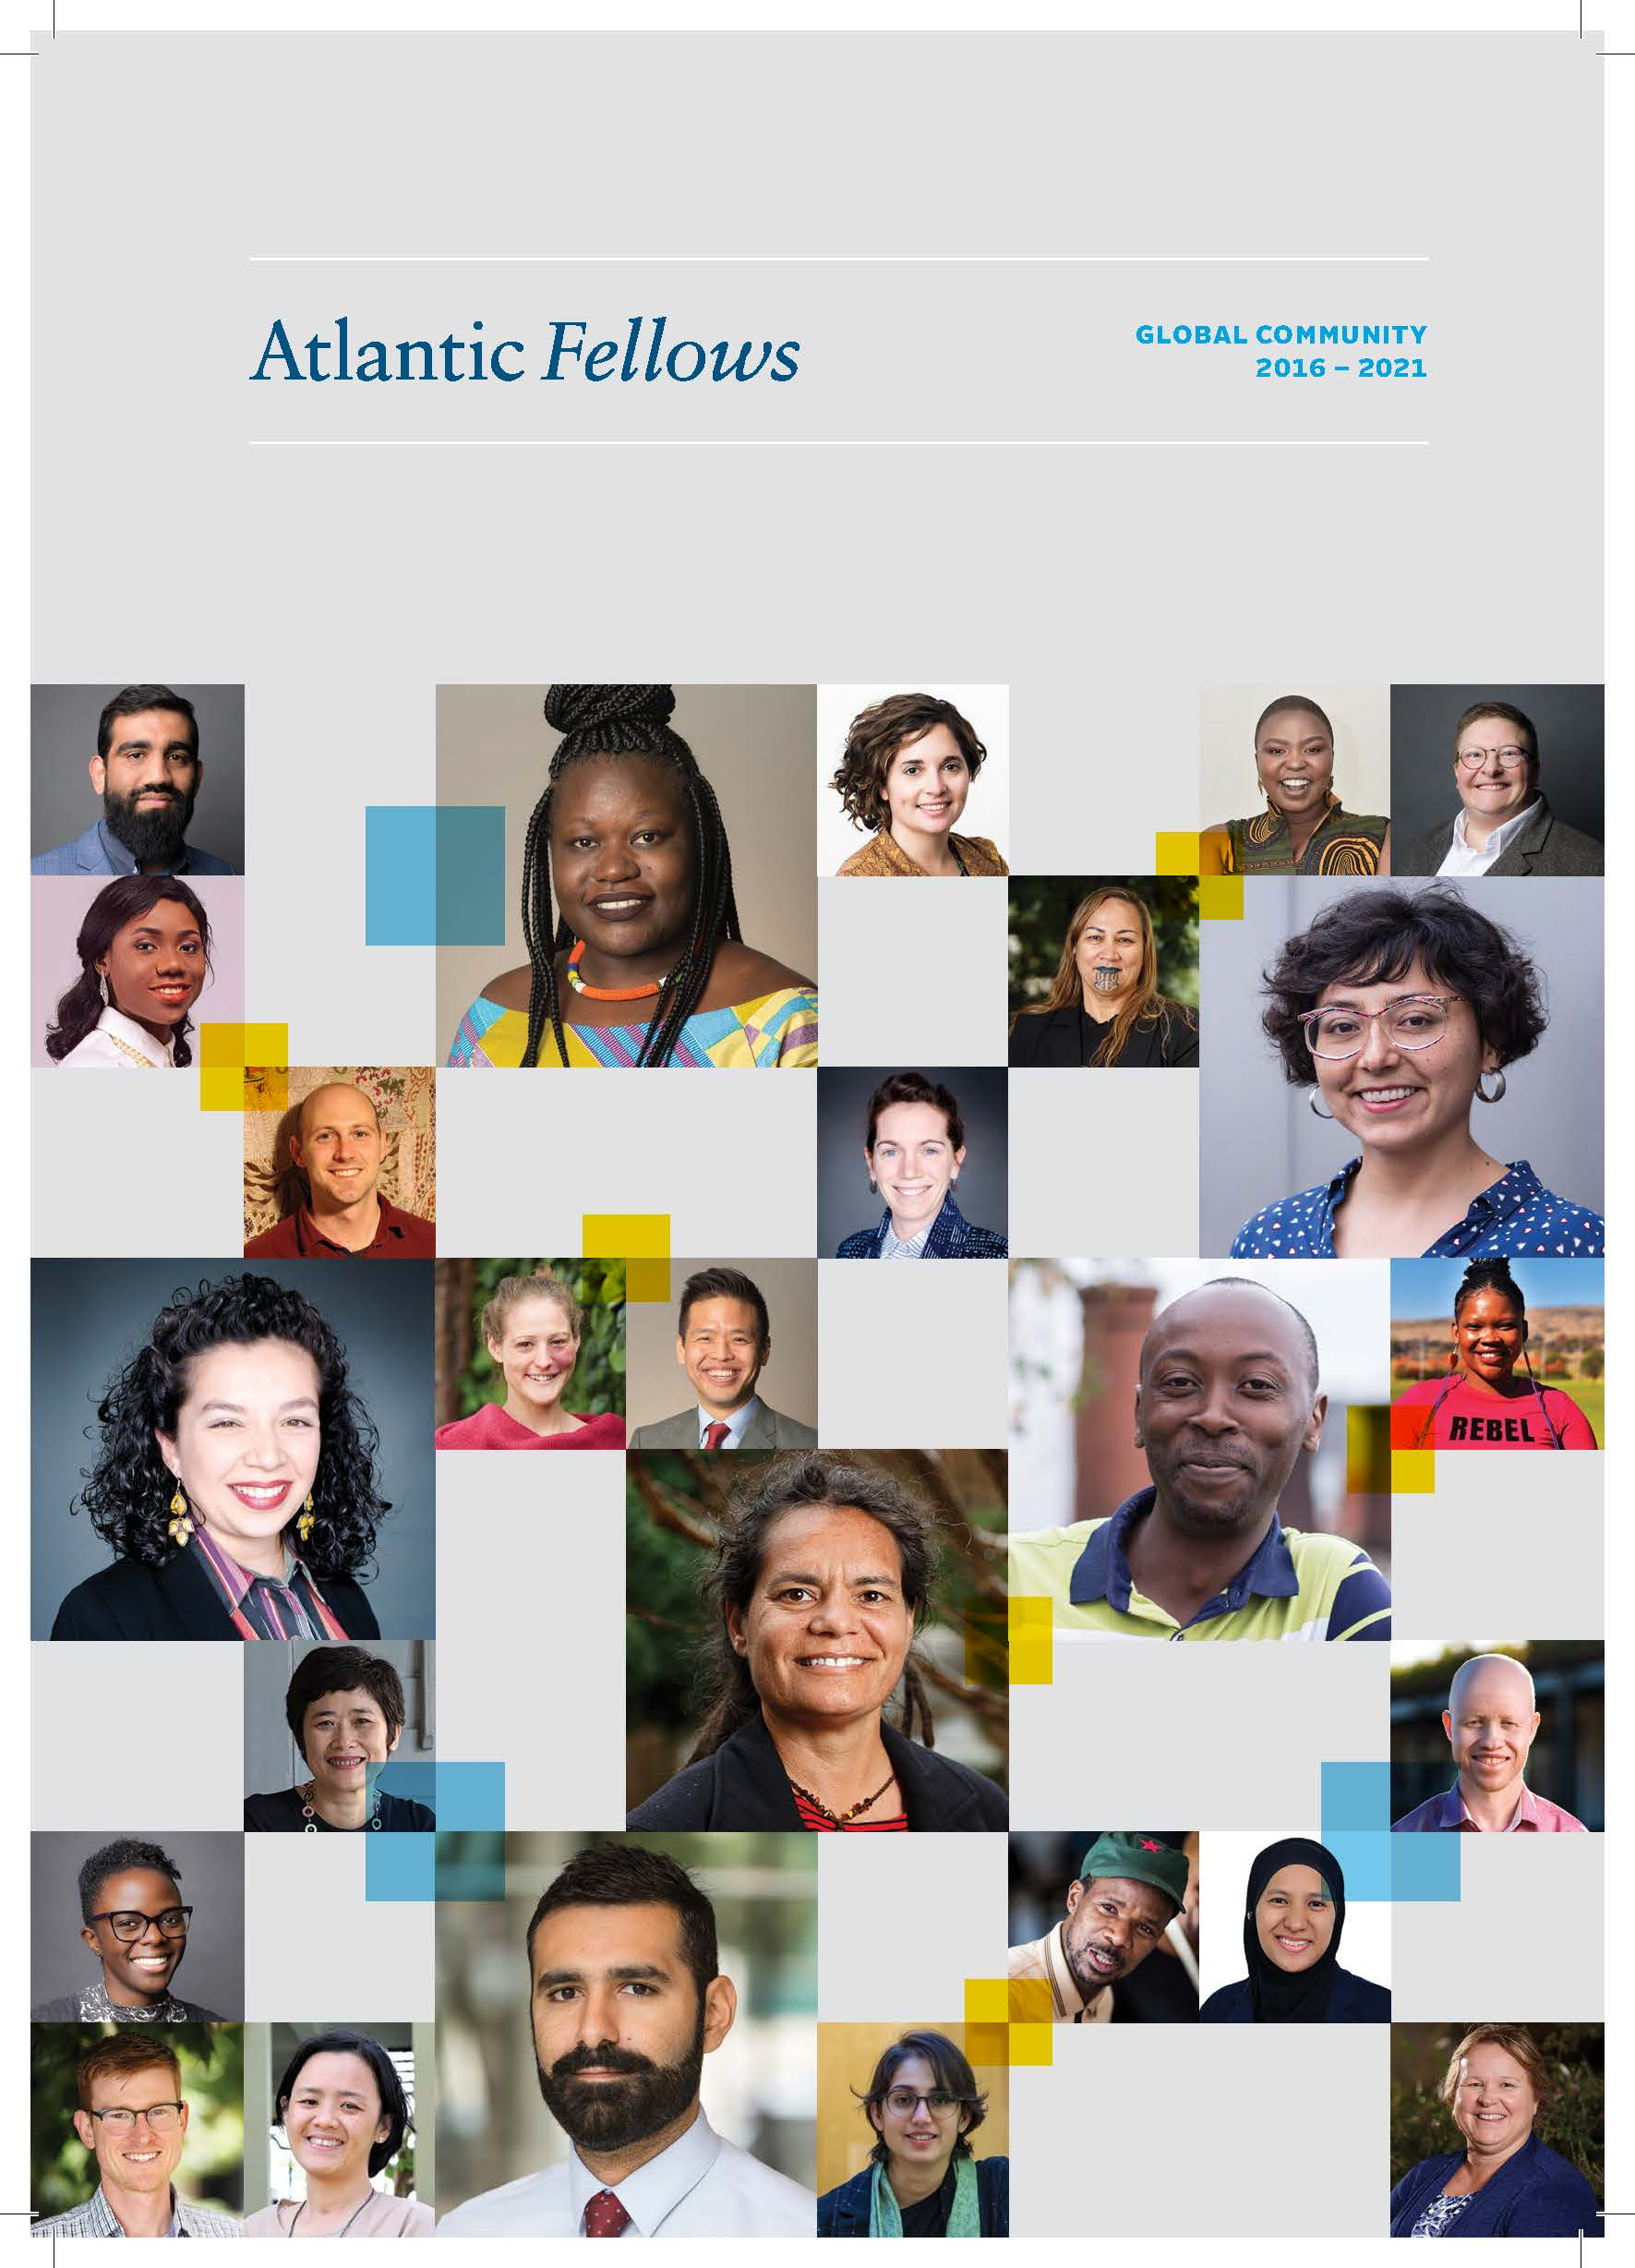 Welcome to the Atlantic Fellows community